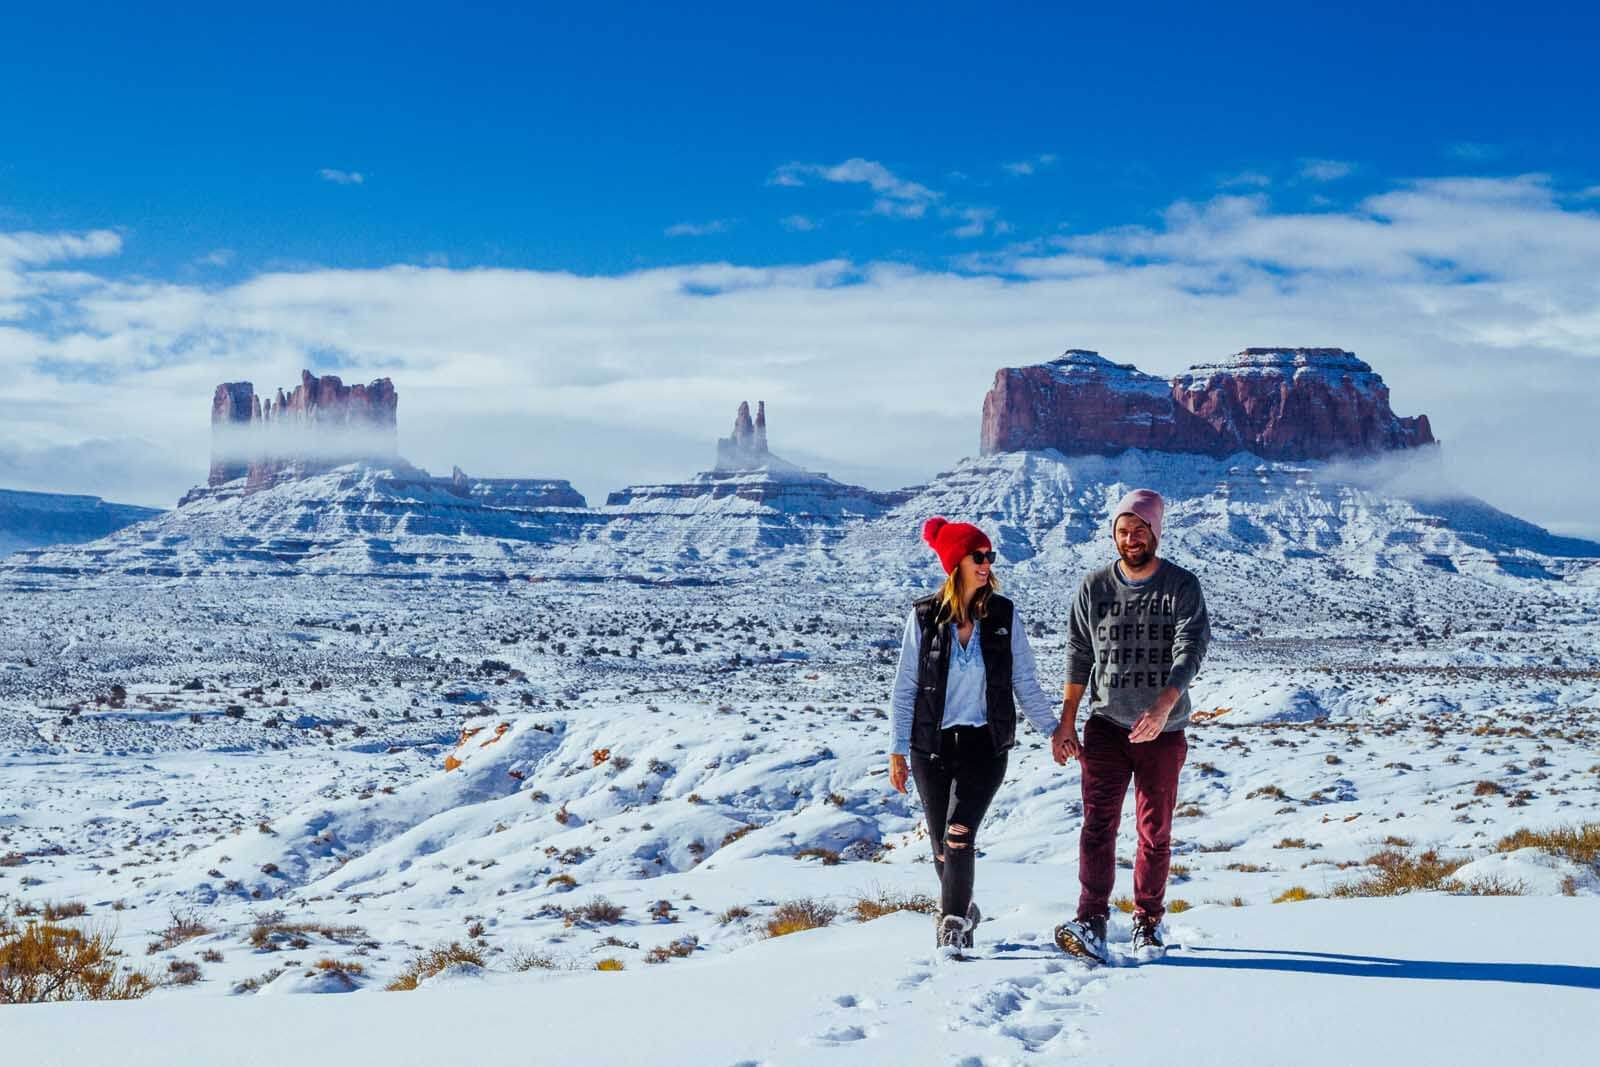 Megan and Scott walking in snow with Monument Valley in the background